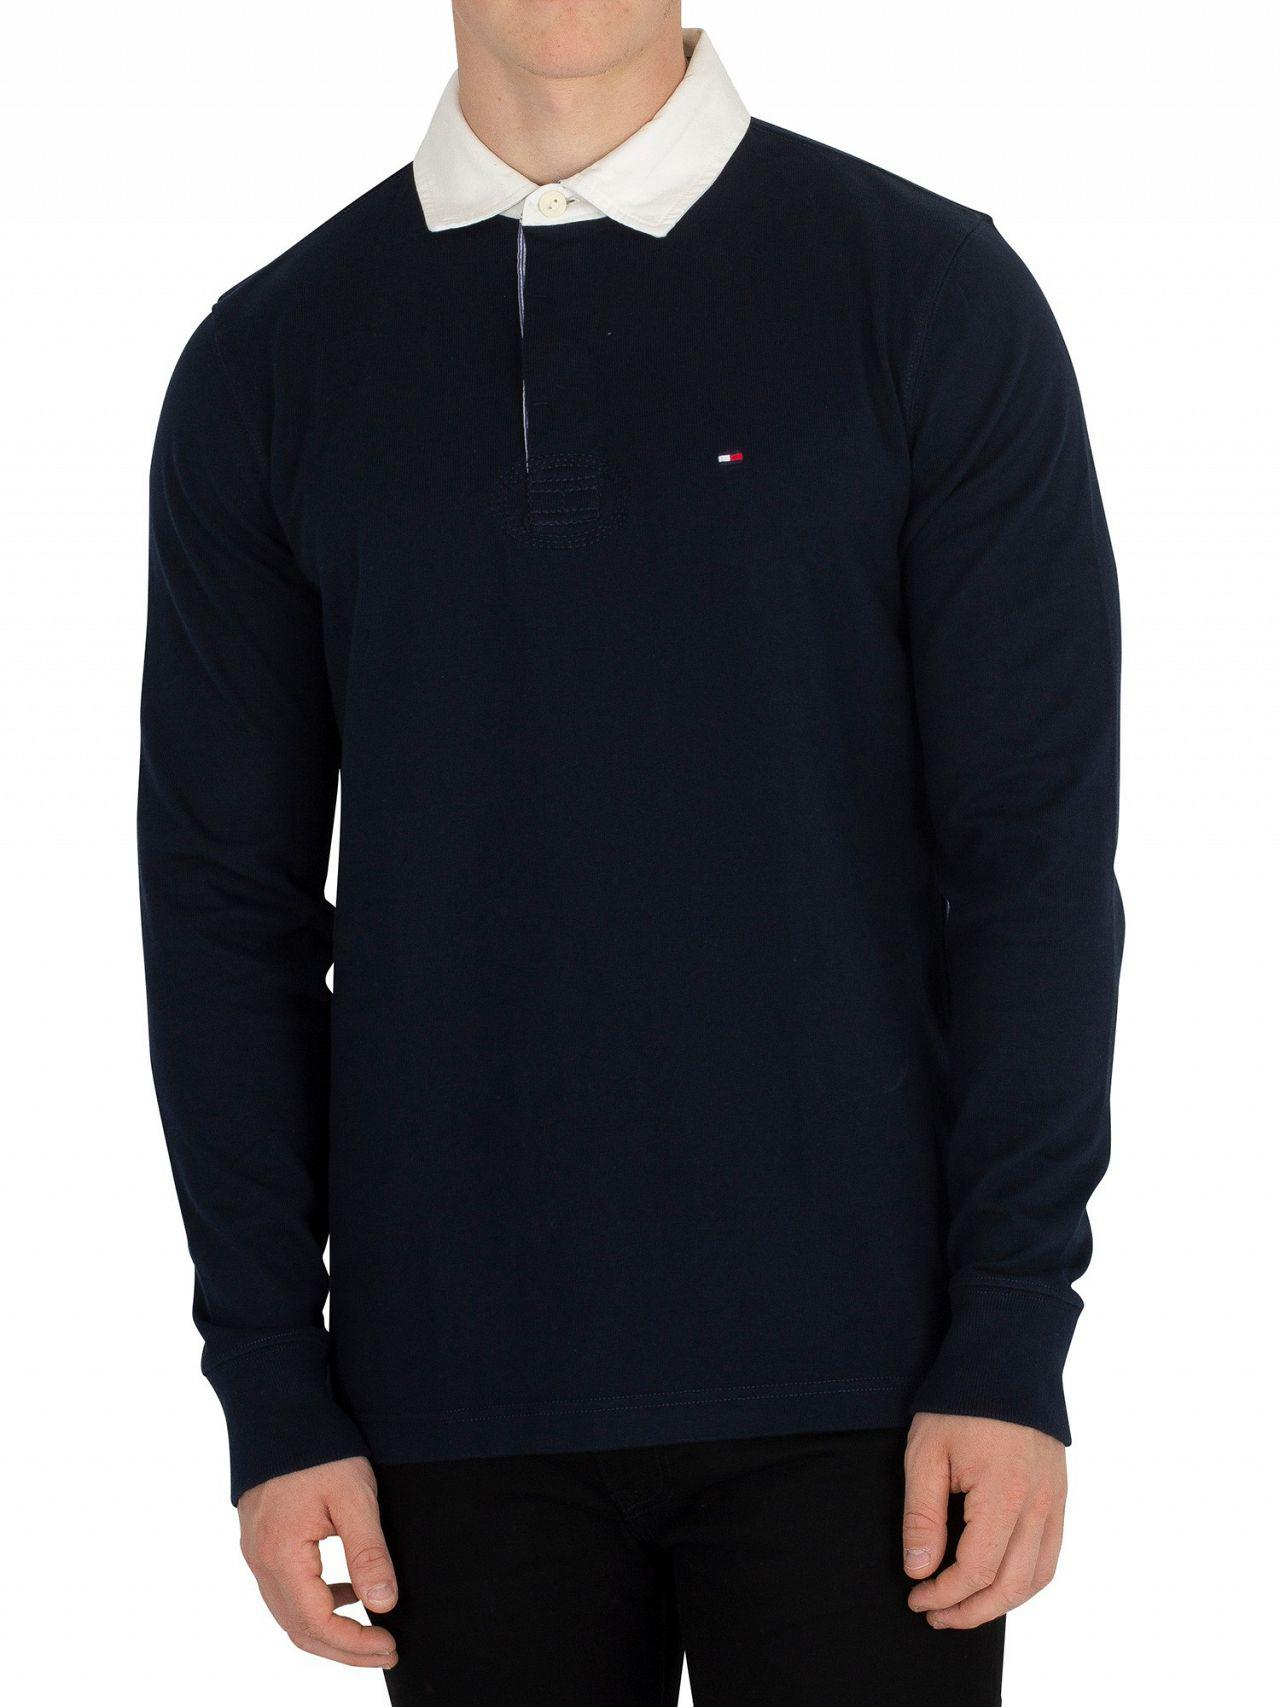 ecb433f3cbf1 Tommy Hilfiger Sky Captain Iconic Rugby Longsleeved Poloshirt in ...